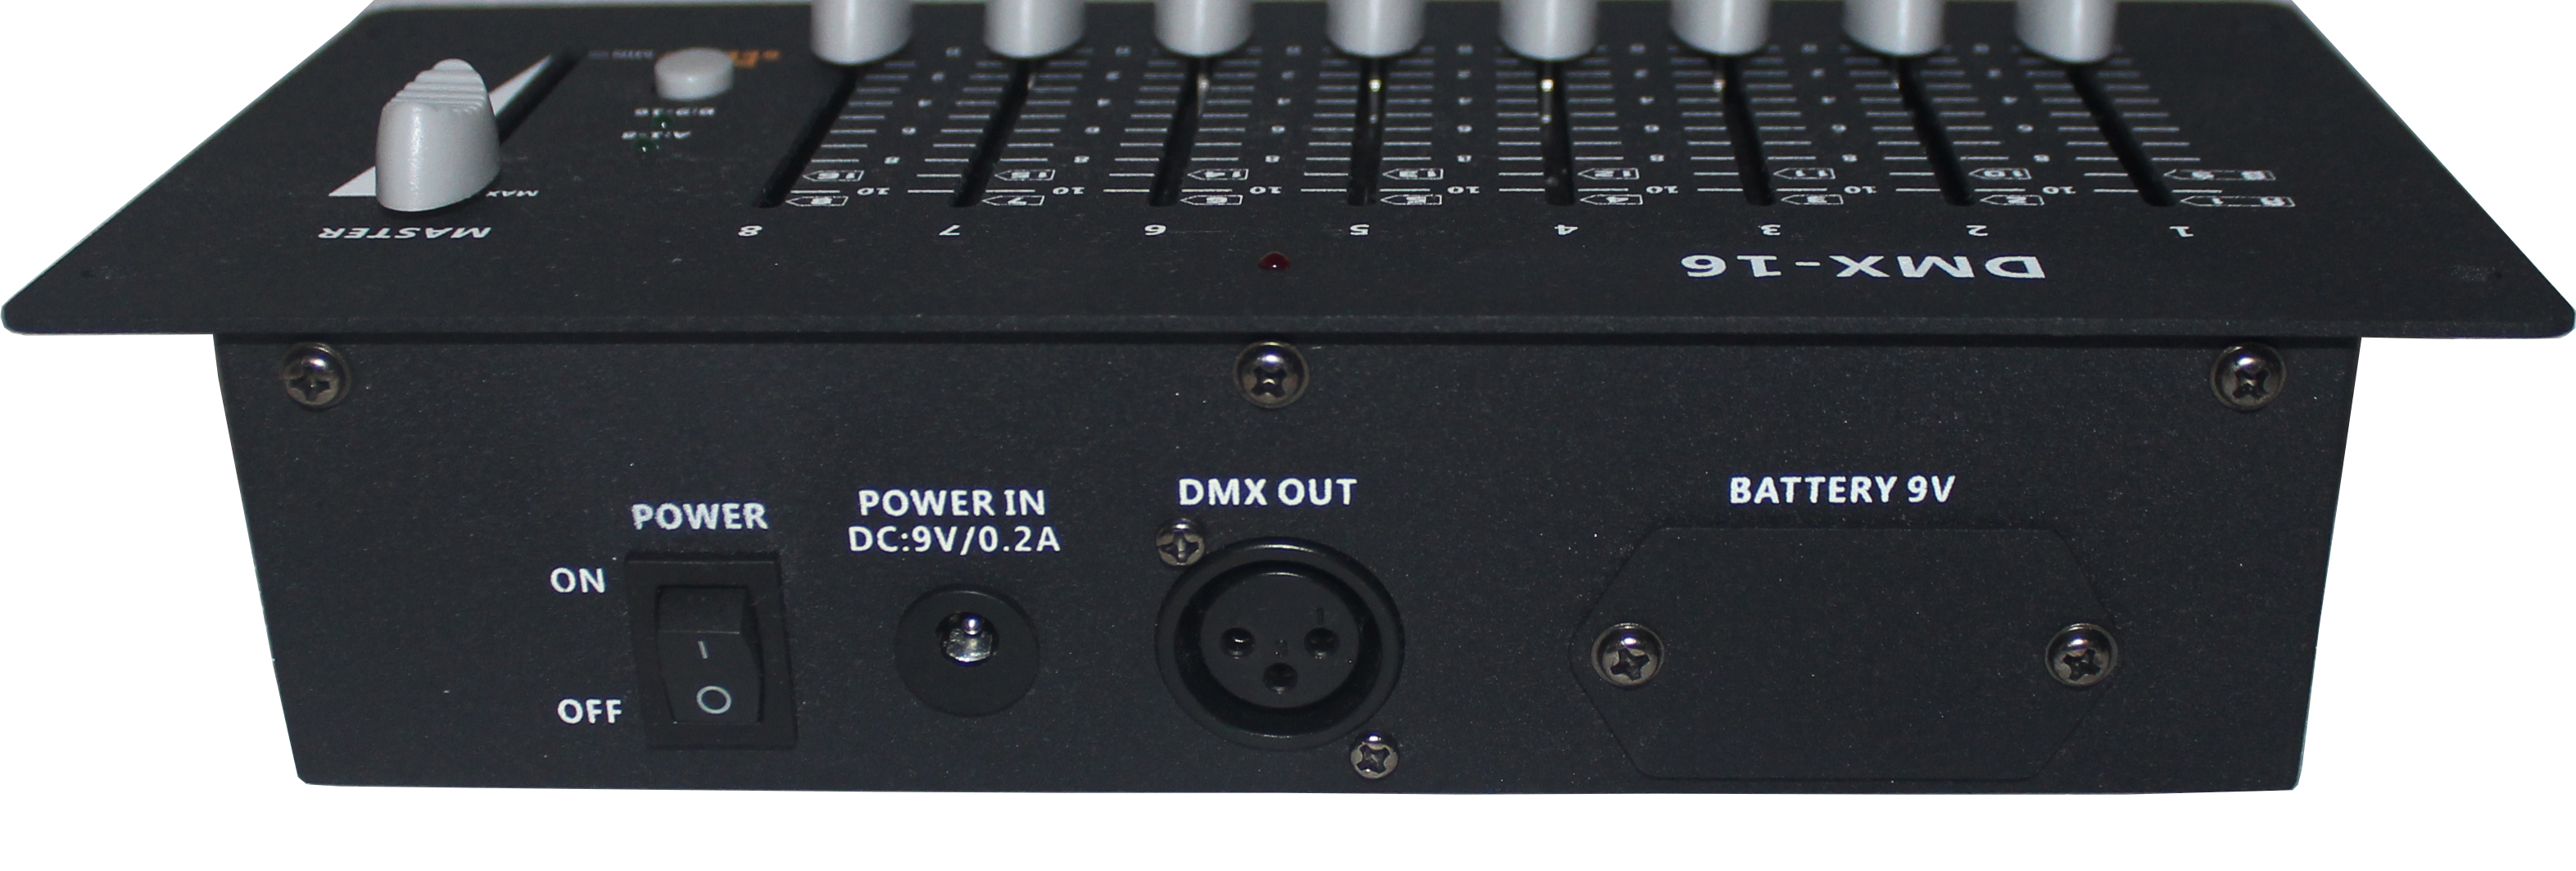 HD-138   8/16 Channels DMX controller